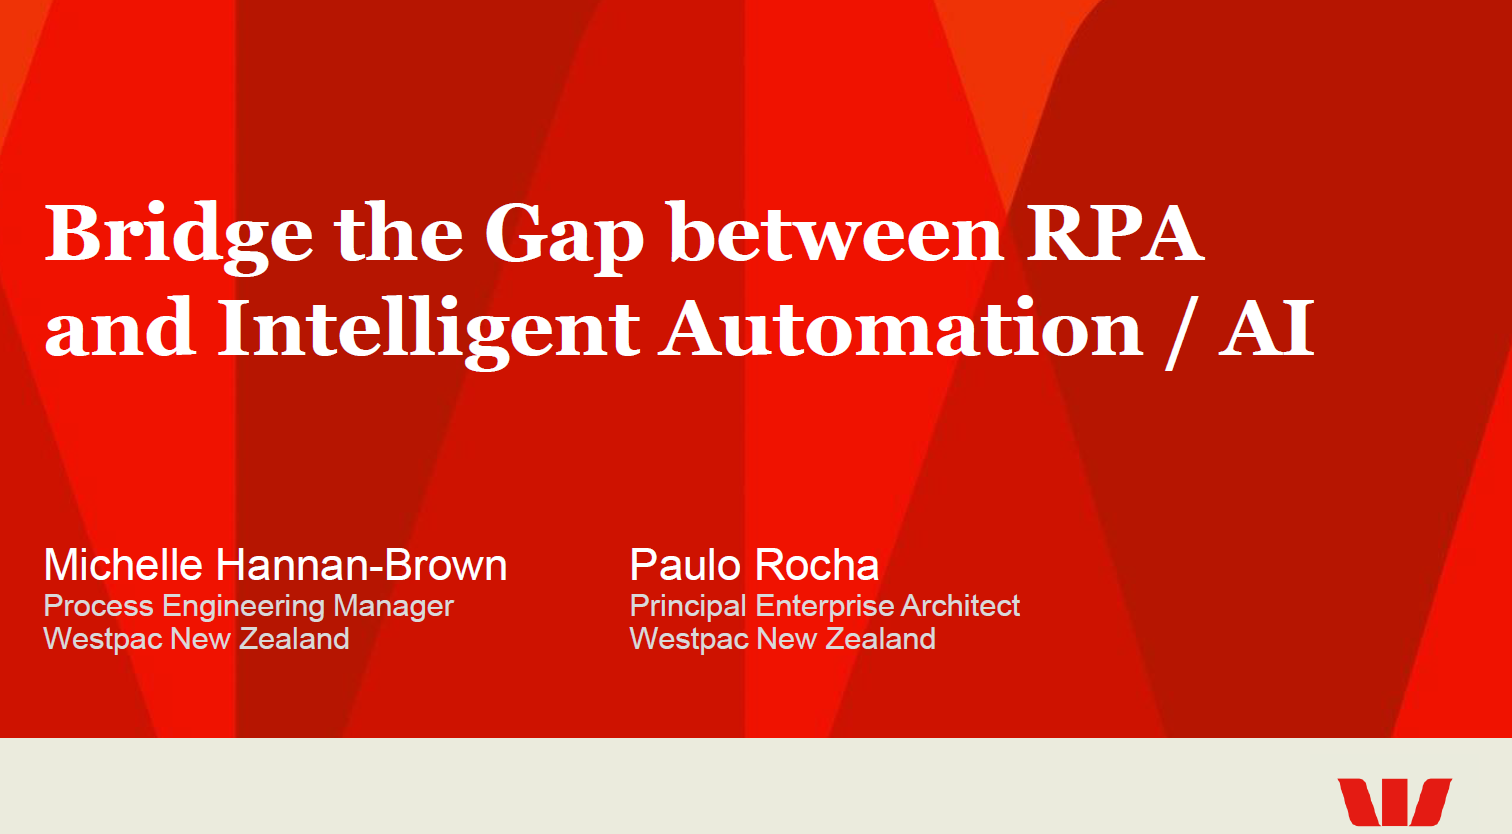 Bridge the Gap between RPA and Intelligent Automation / AI